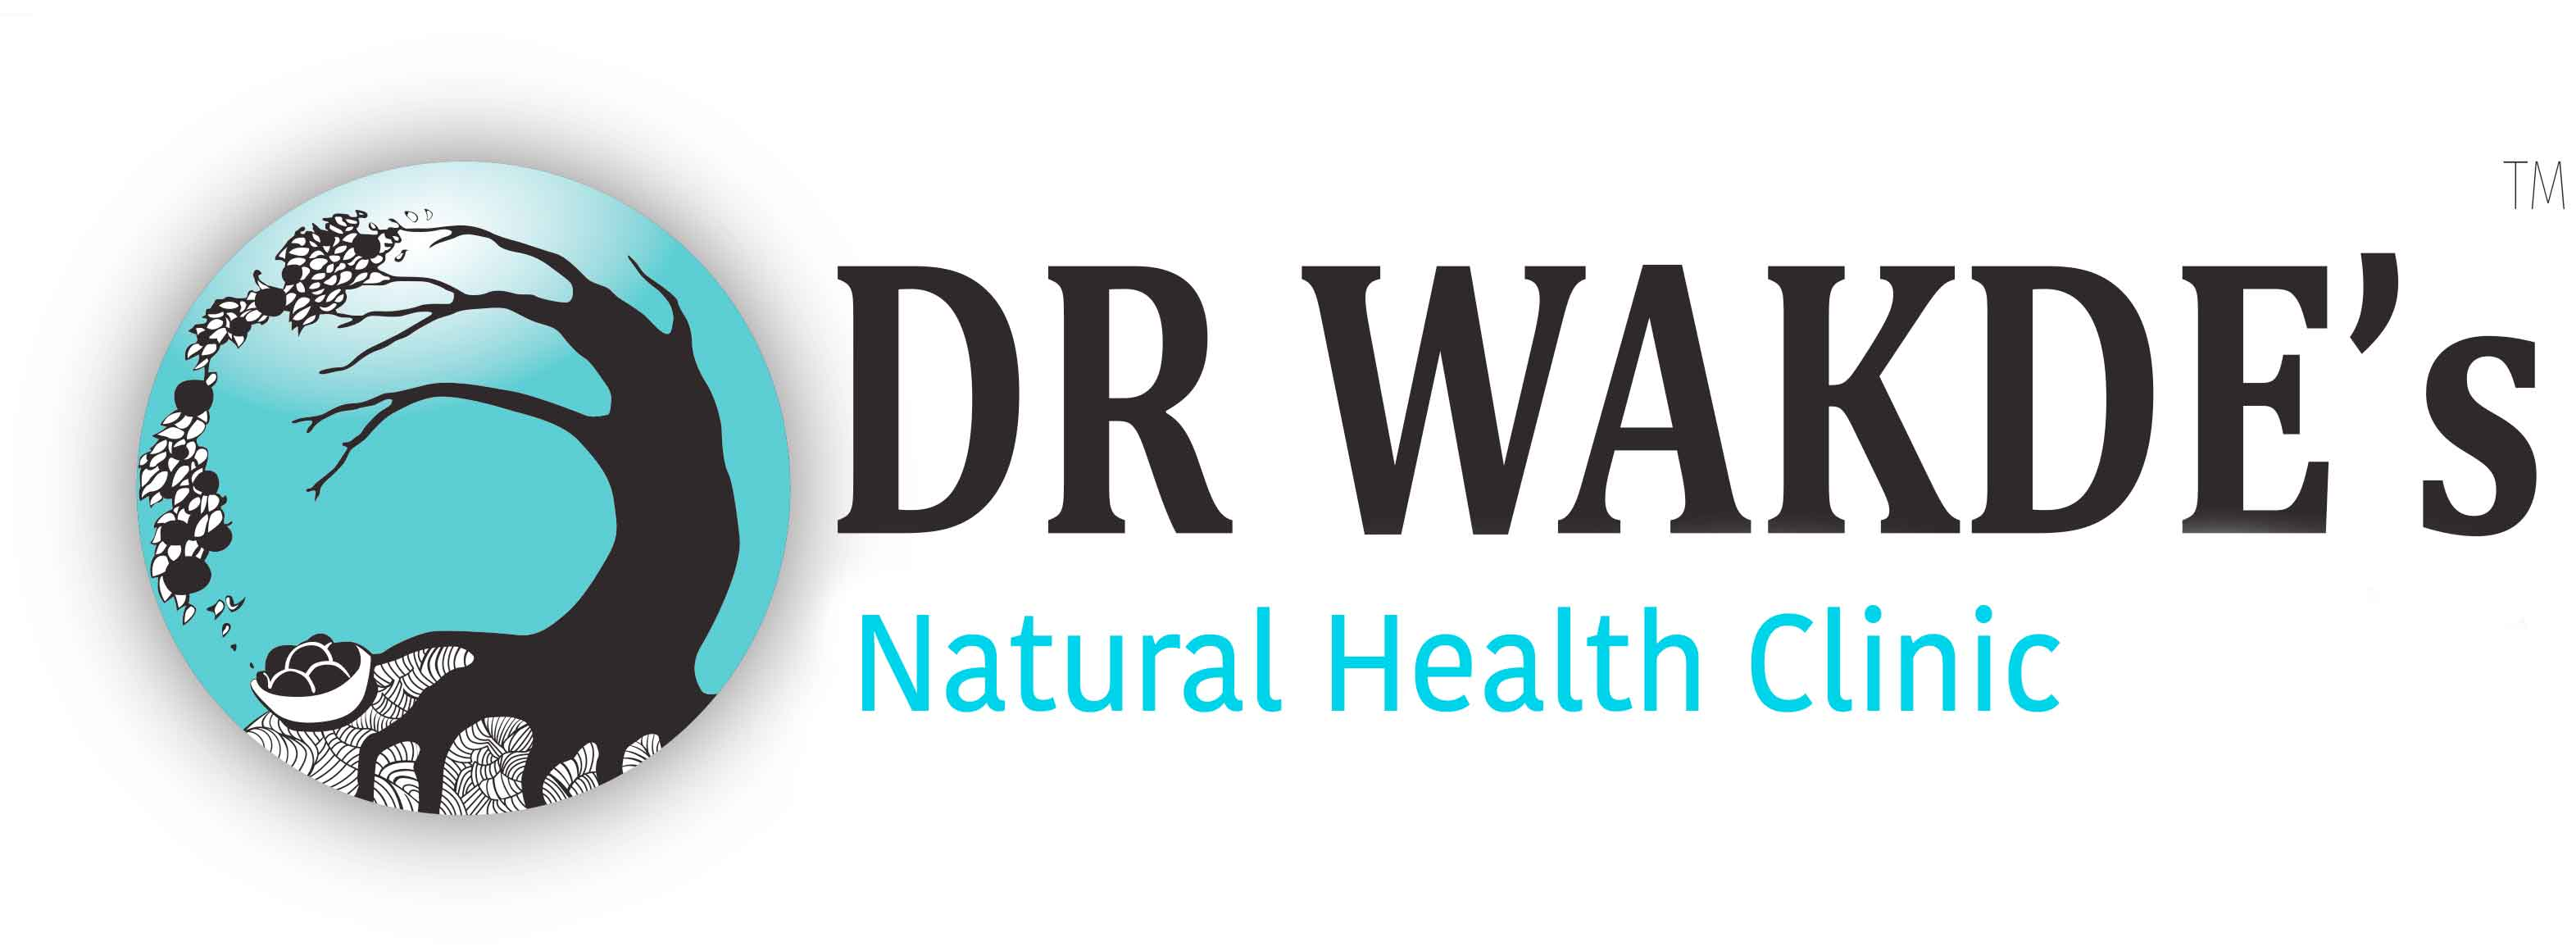 DR WAKDE'S® Natural Health Clinic